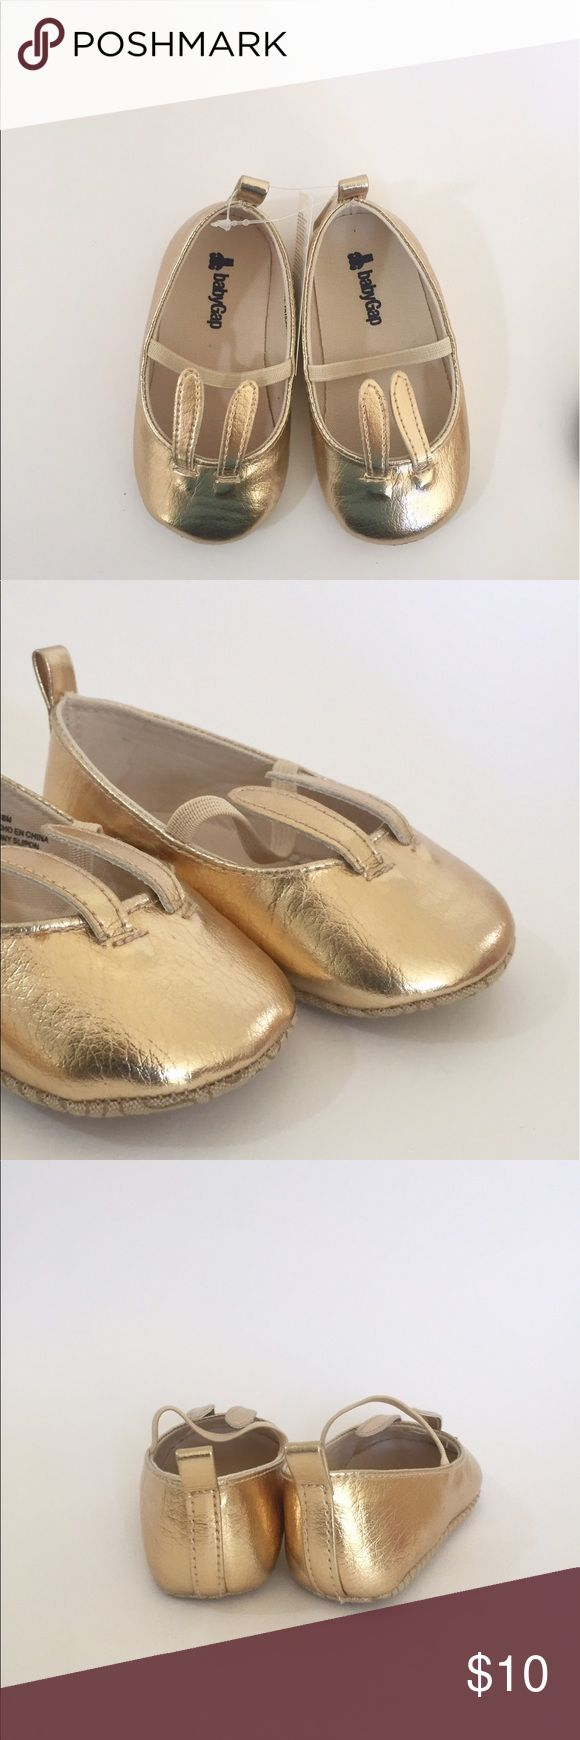 NEW - GAP Baby Gold Ballet Flats (18/24) Brand New with Tags / Gold Ballet Flats with Bunny ears GAP Shoes